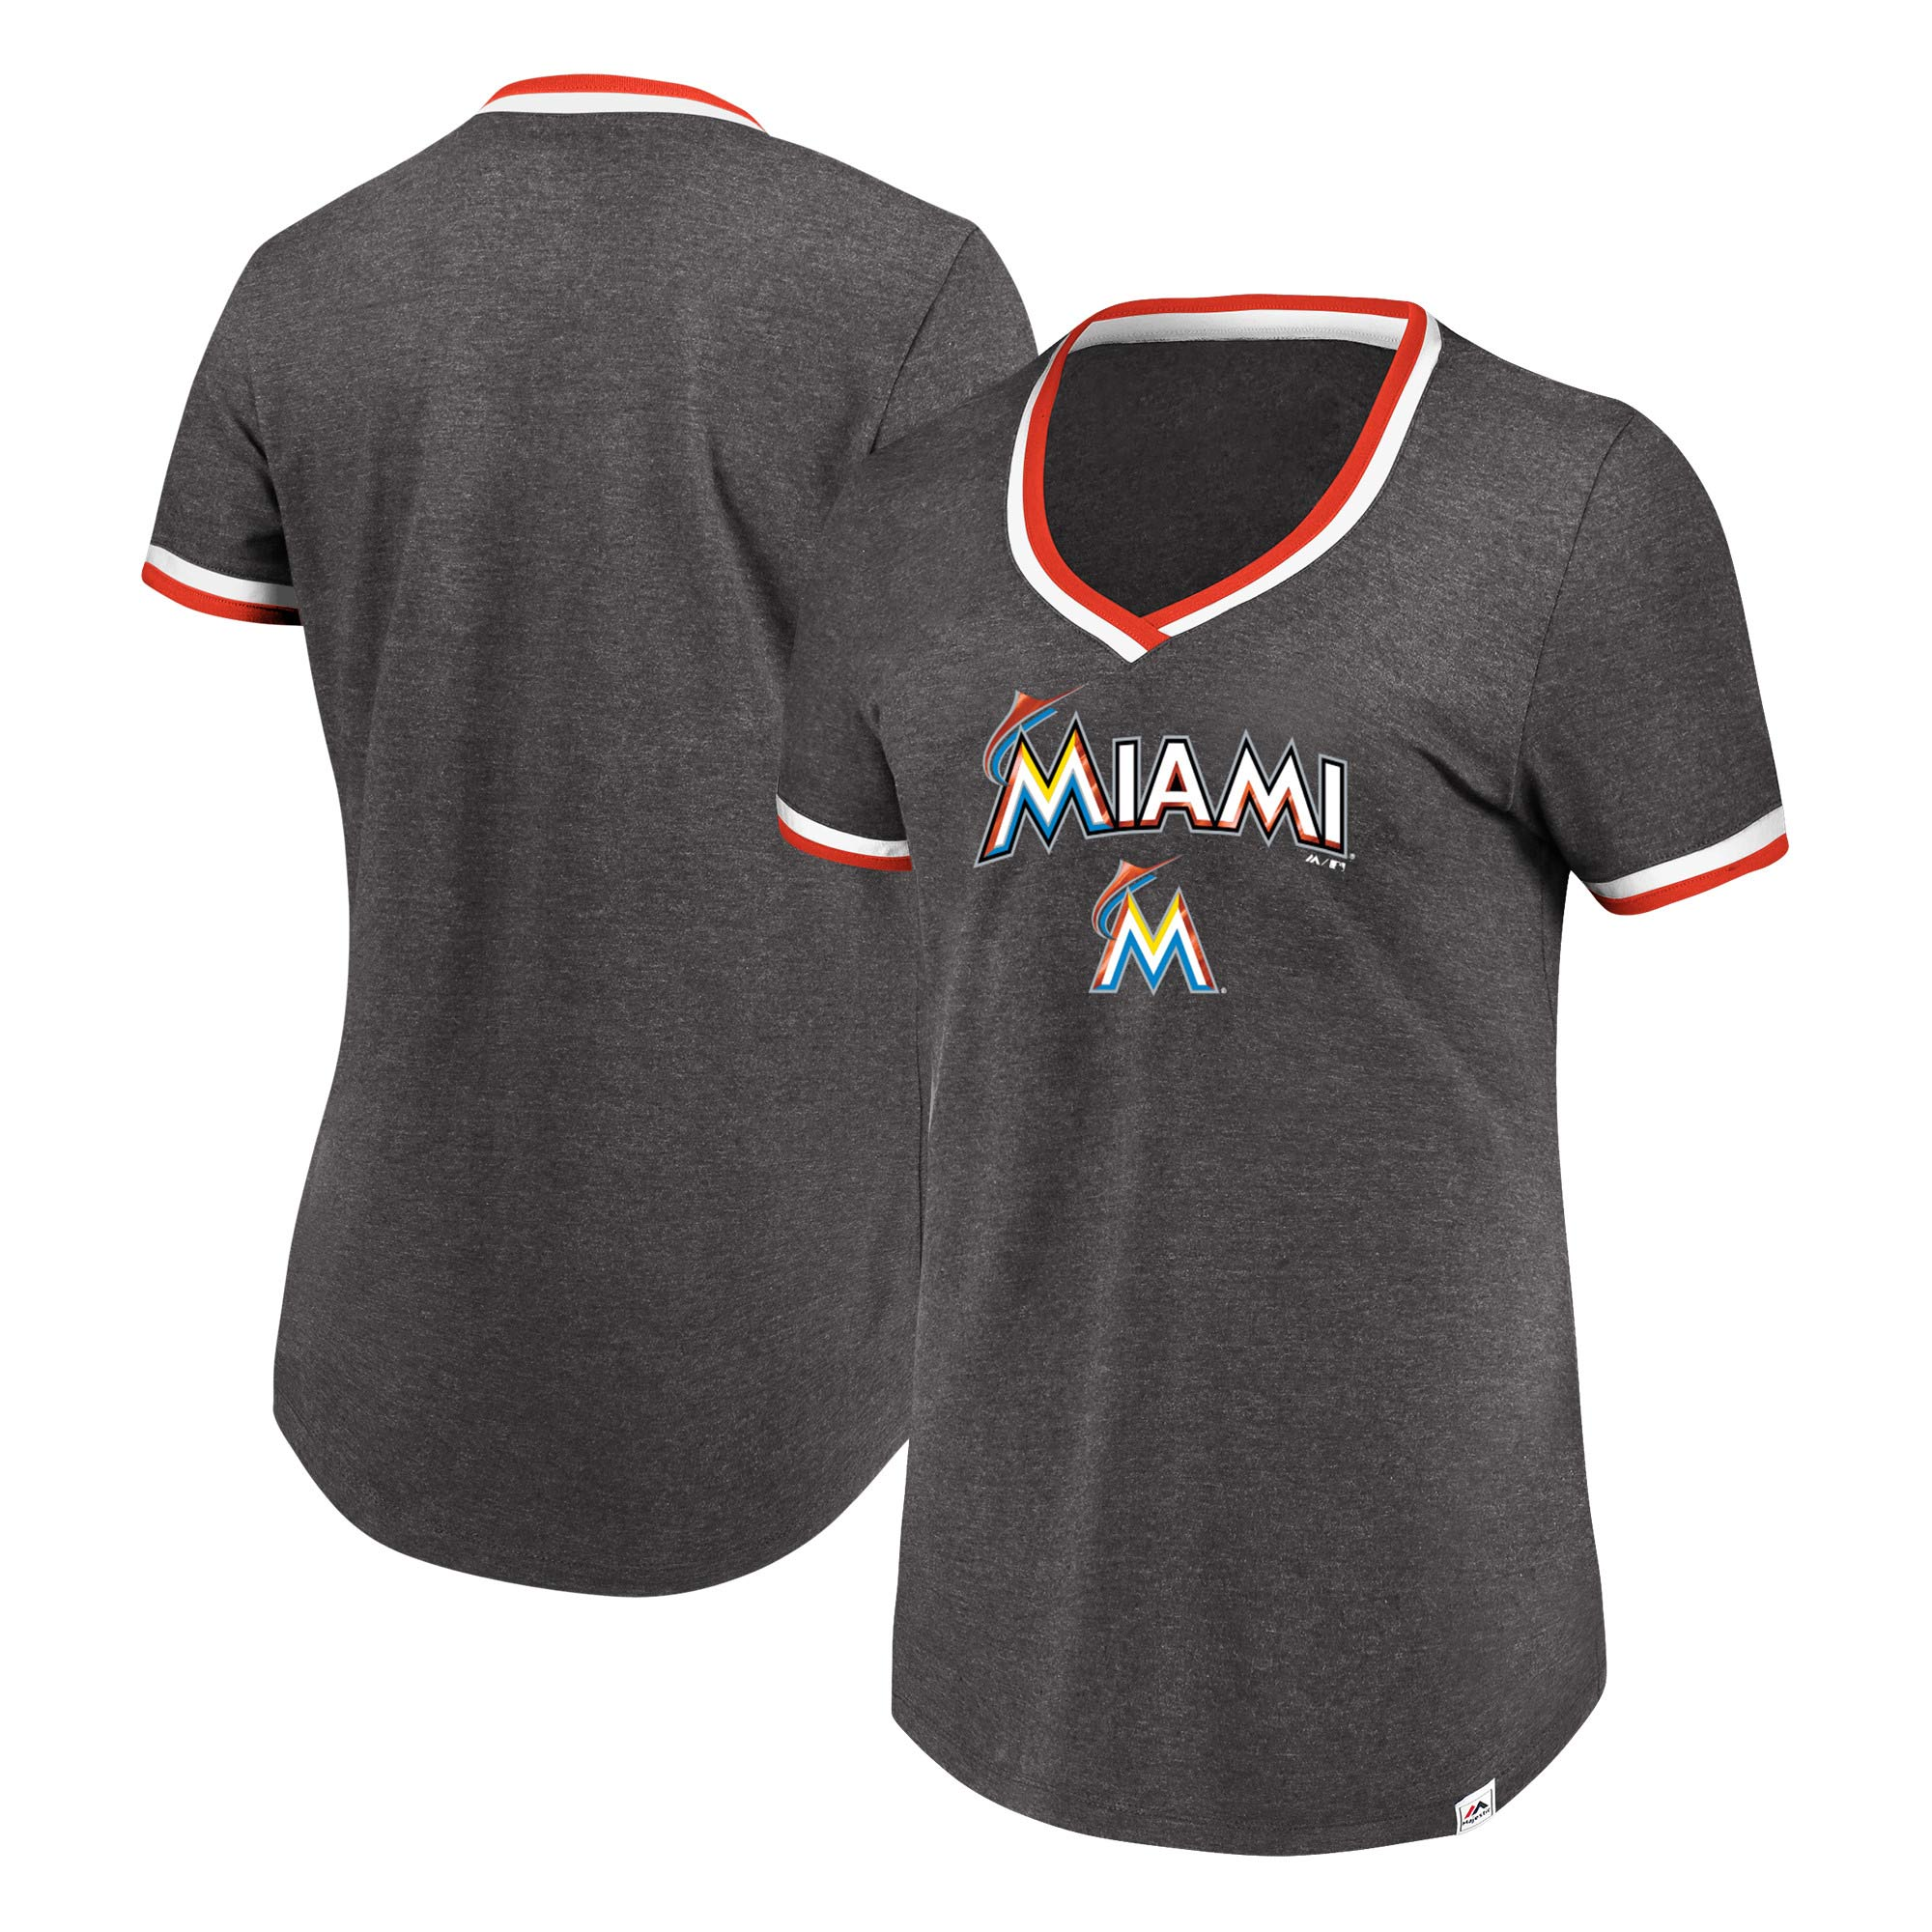 Miami Marlins Majestic Women's Driven By Results V-Neck T-Shirt - Charcoal